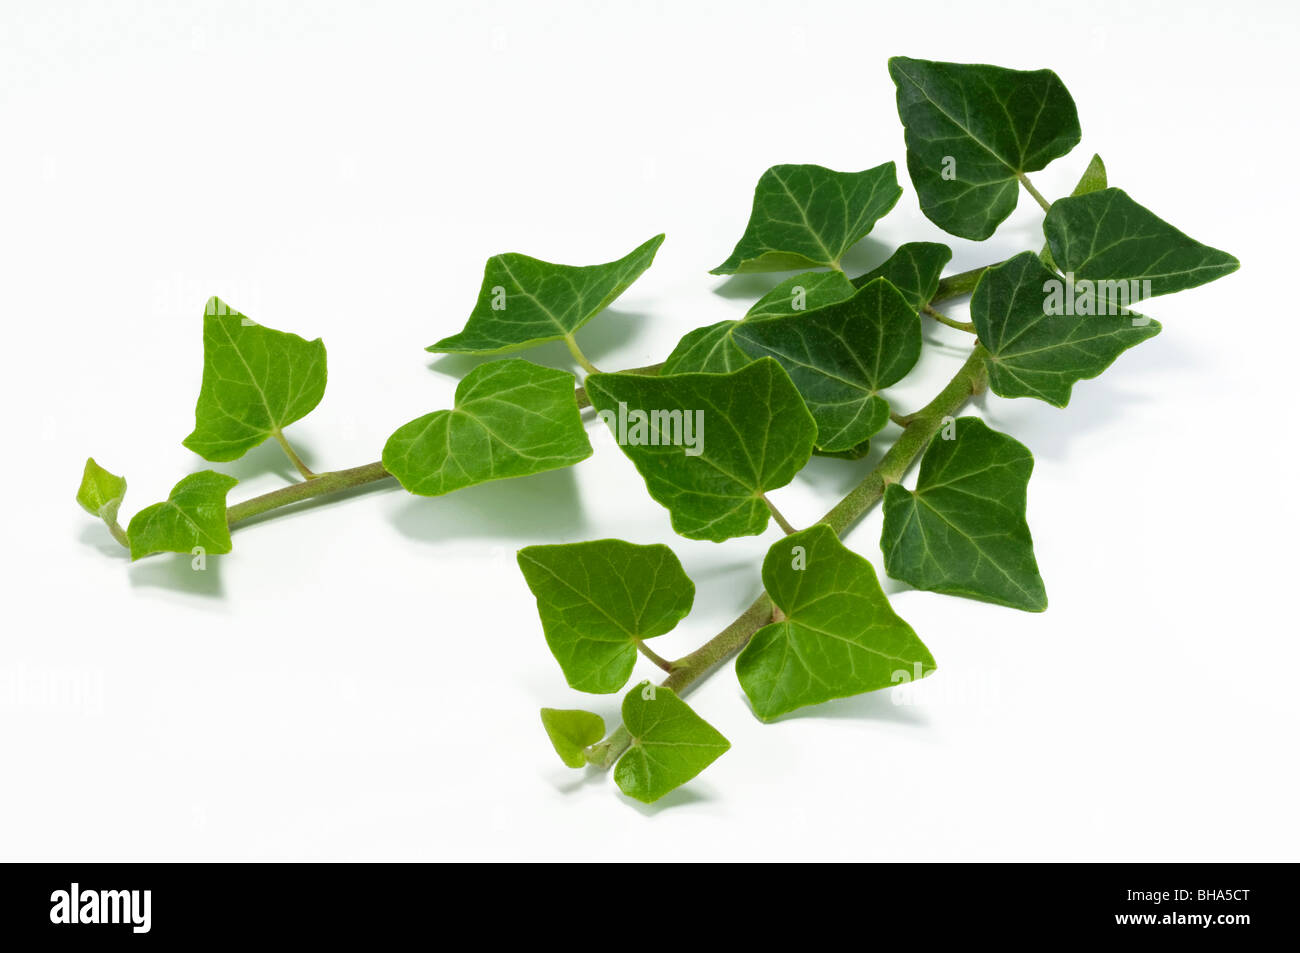 Common Ivy, English Ivy (Hedera helix), tendrils, studio picture. - Stock Image